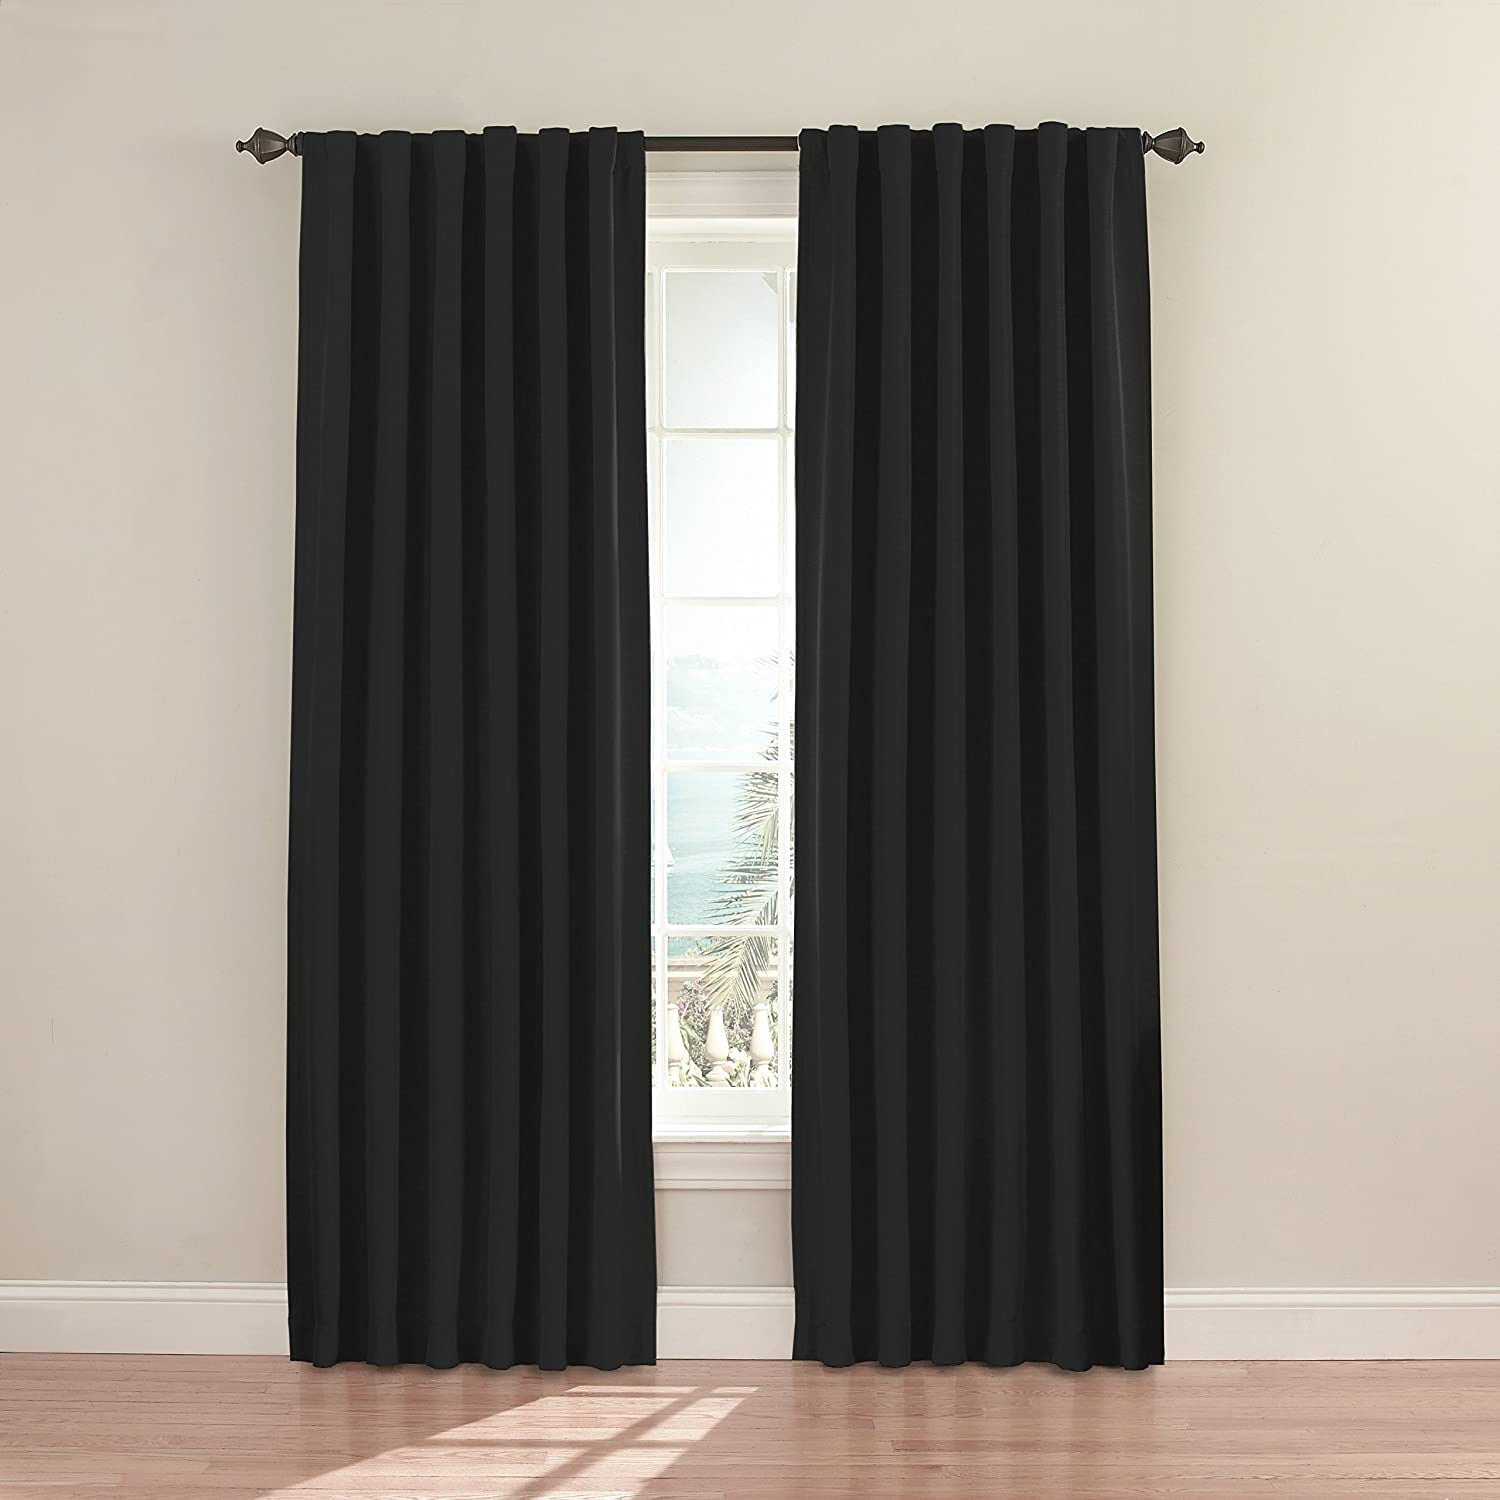 Amazon.com: Eclipse 11353052X084BK Fresno 52-Inch by 84-Inch Blackout  Single Window Curtain Panel, Black: Home & Kitchen